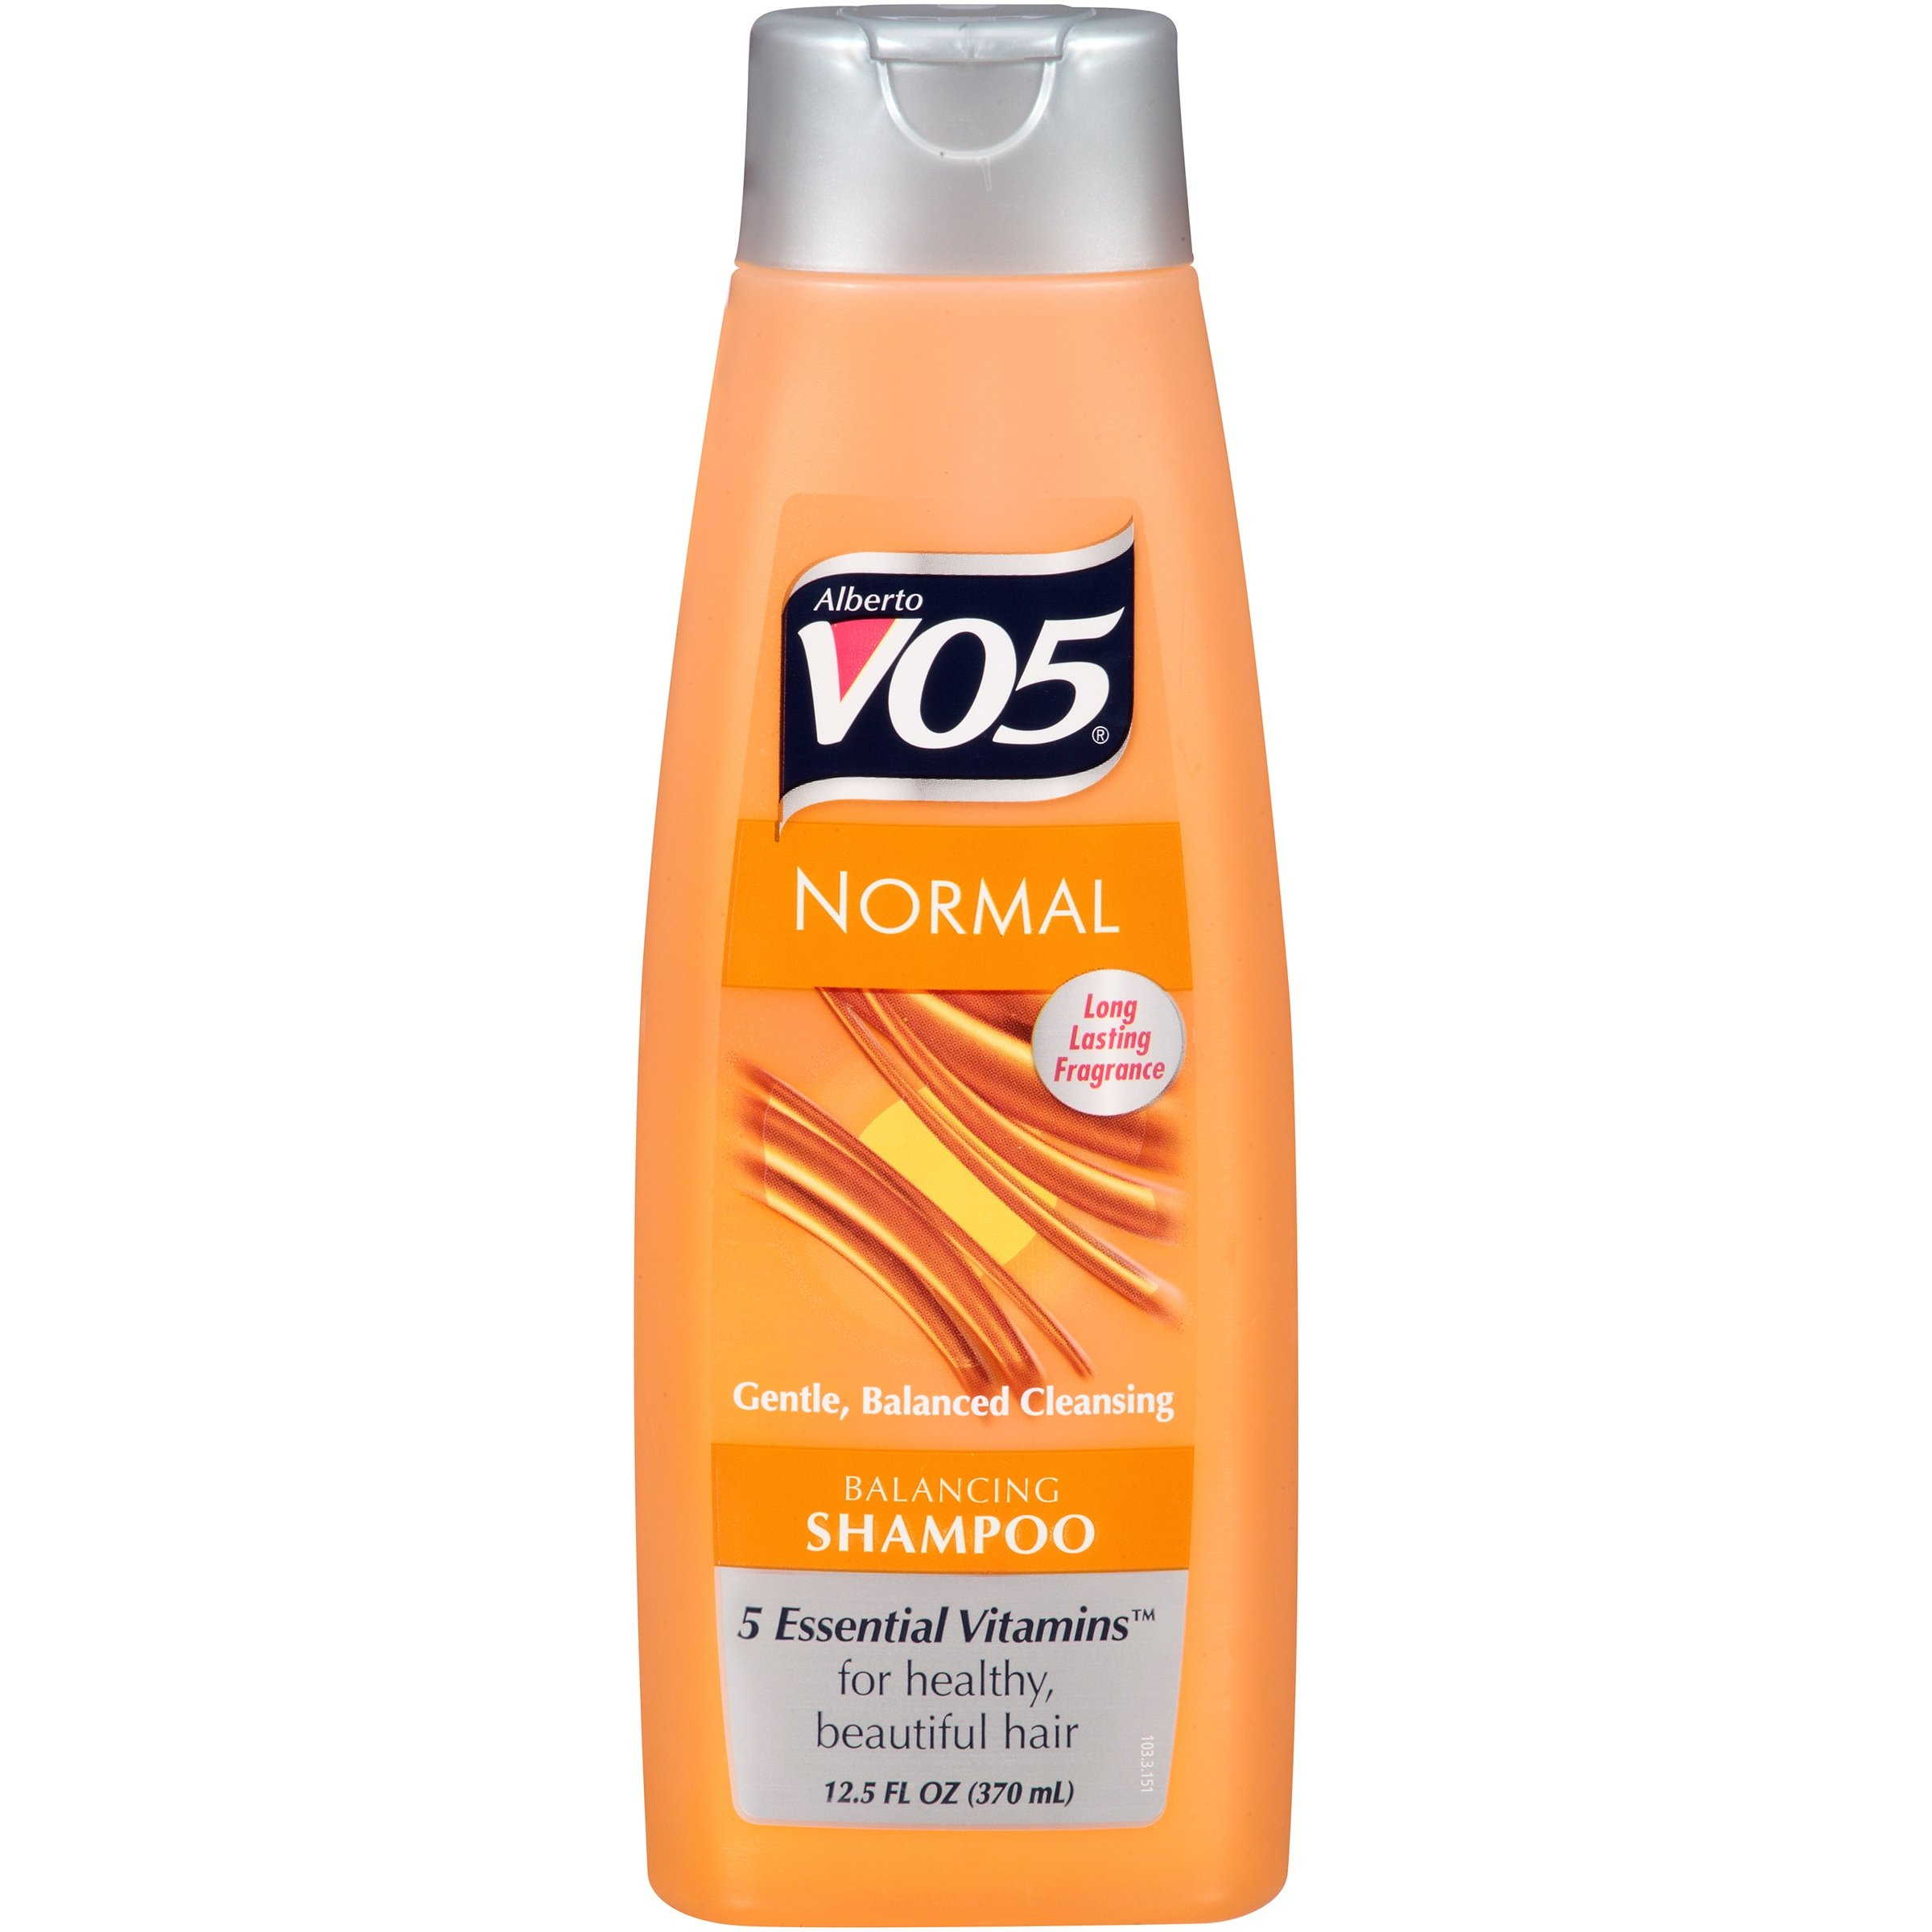 VO5 Normal Balancing Shampoo, 12.5 Ounces each (Value Pack of 12) by VO5